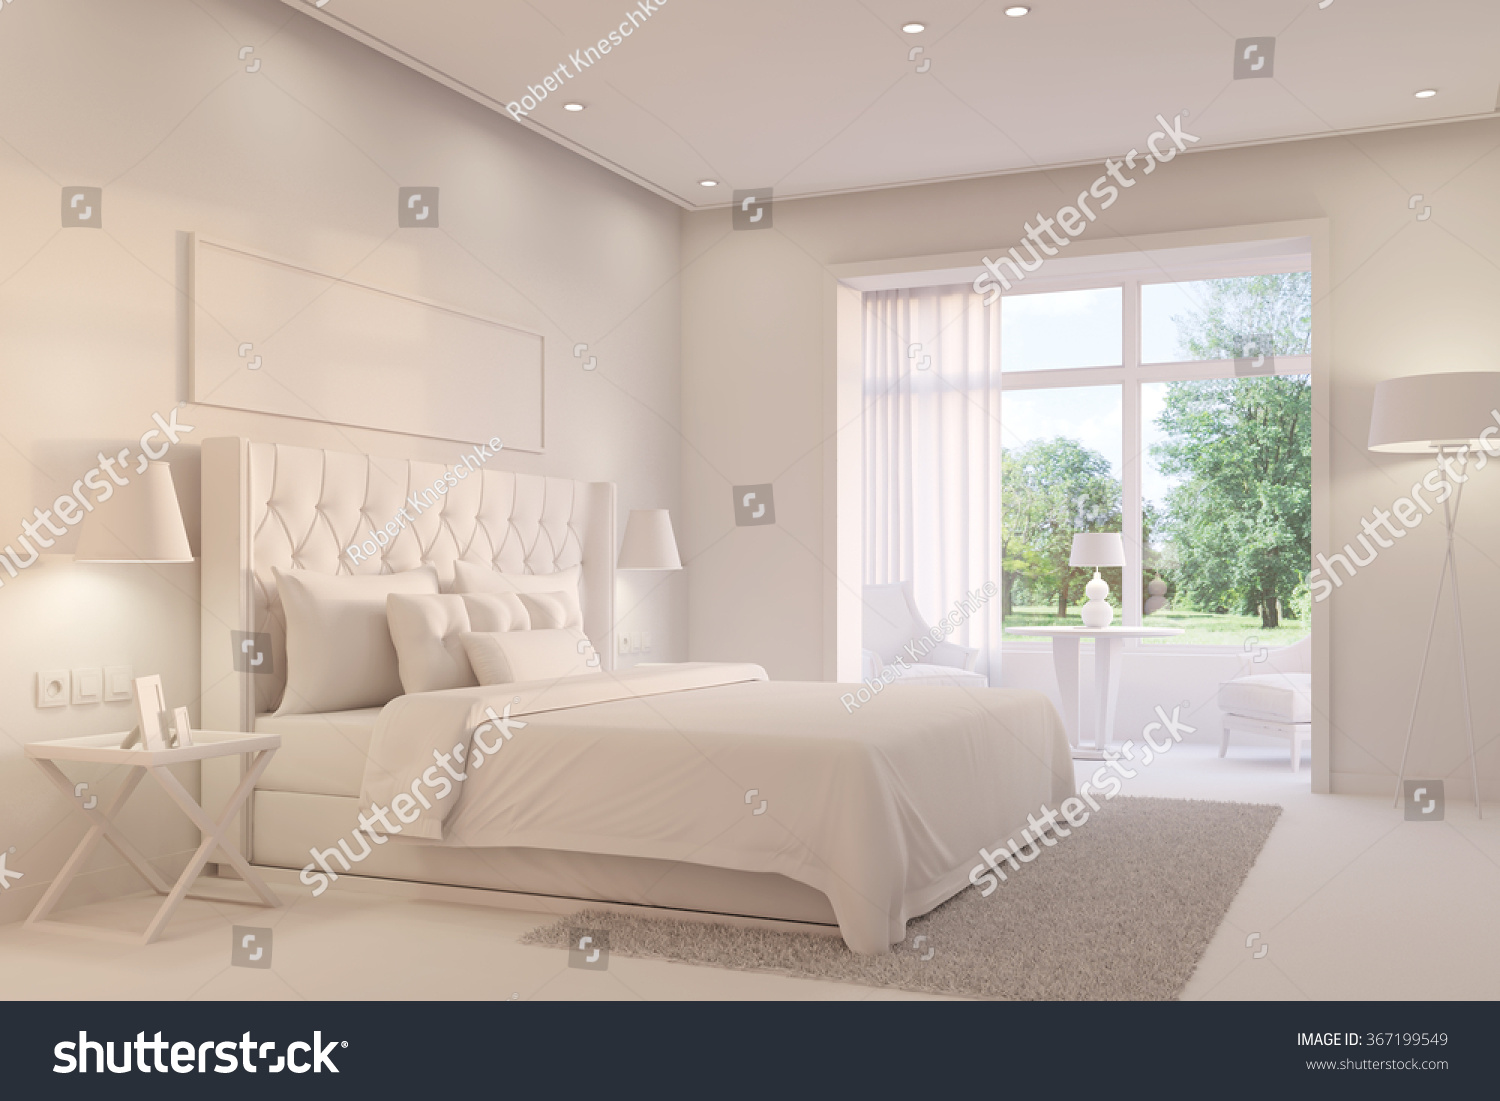 Bright white bedroom with king size bed on a day  3D Rendering. Bright White Bedroom King Size Bed Stock Illustration 367199549